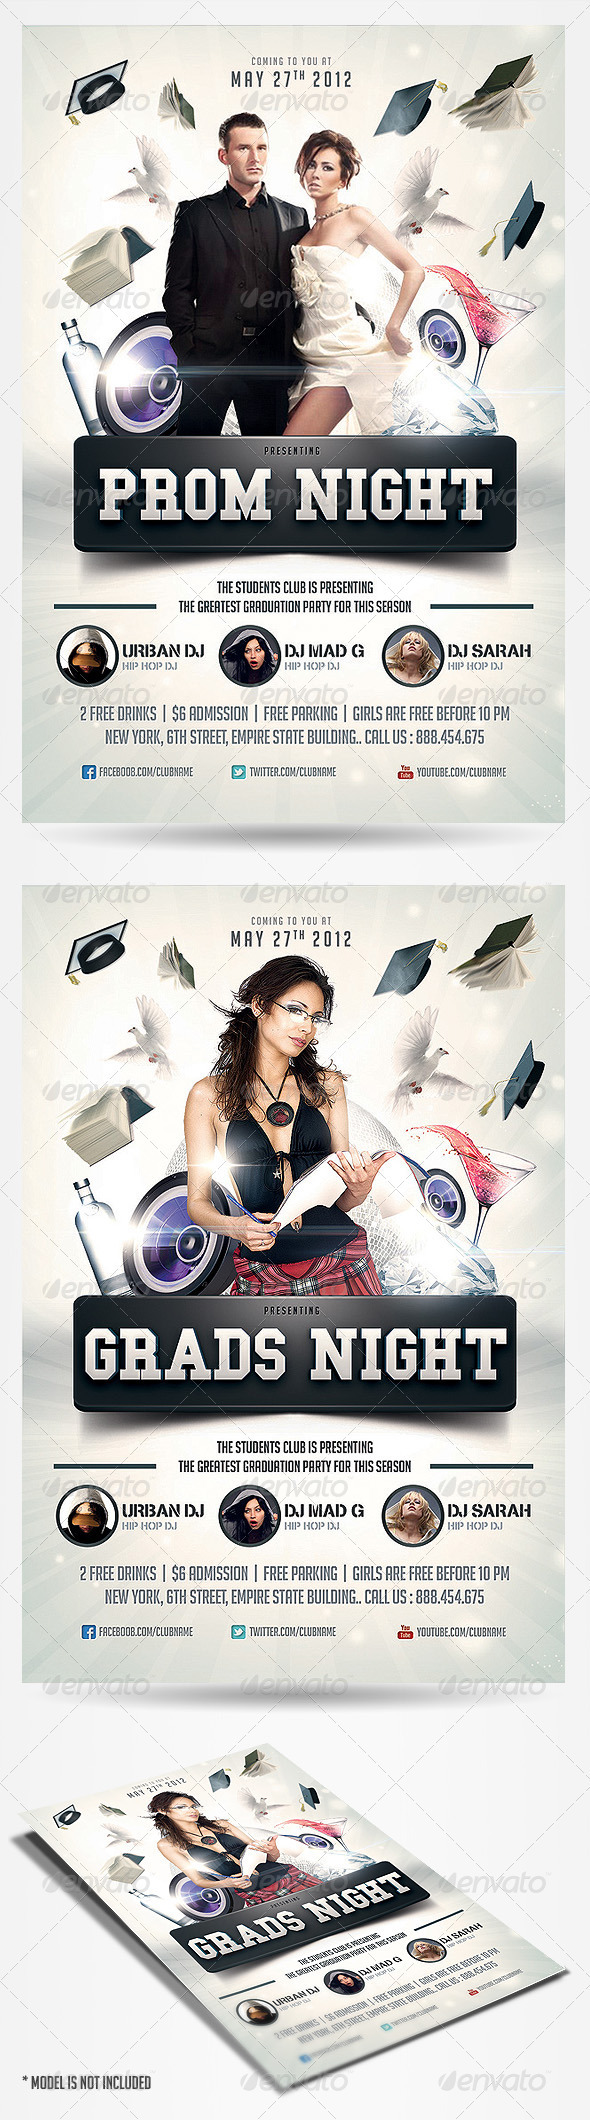 Graduation Prom Flyer - Flyers Print Templates